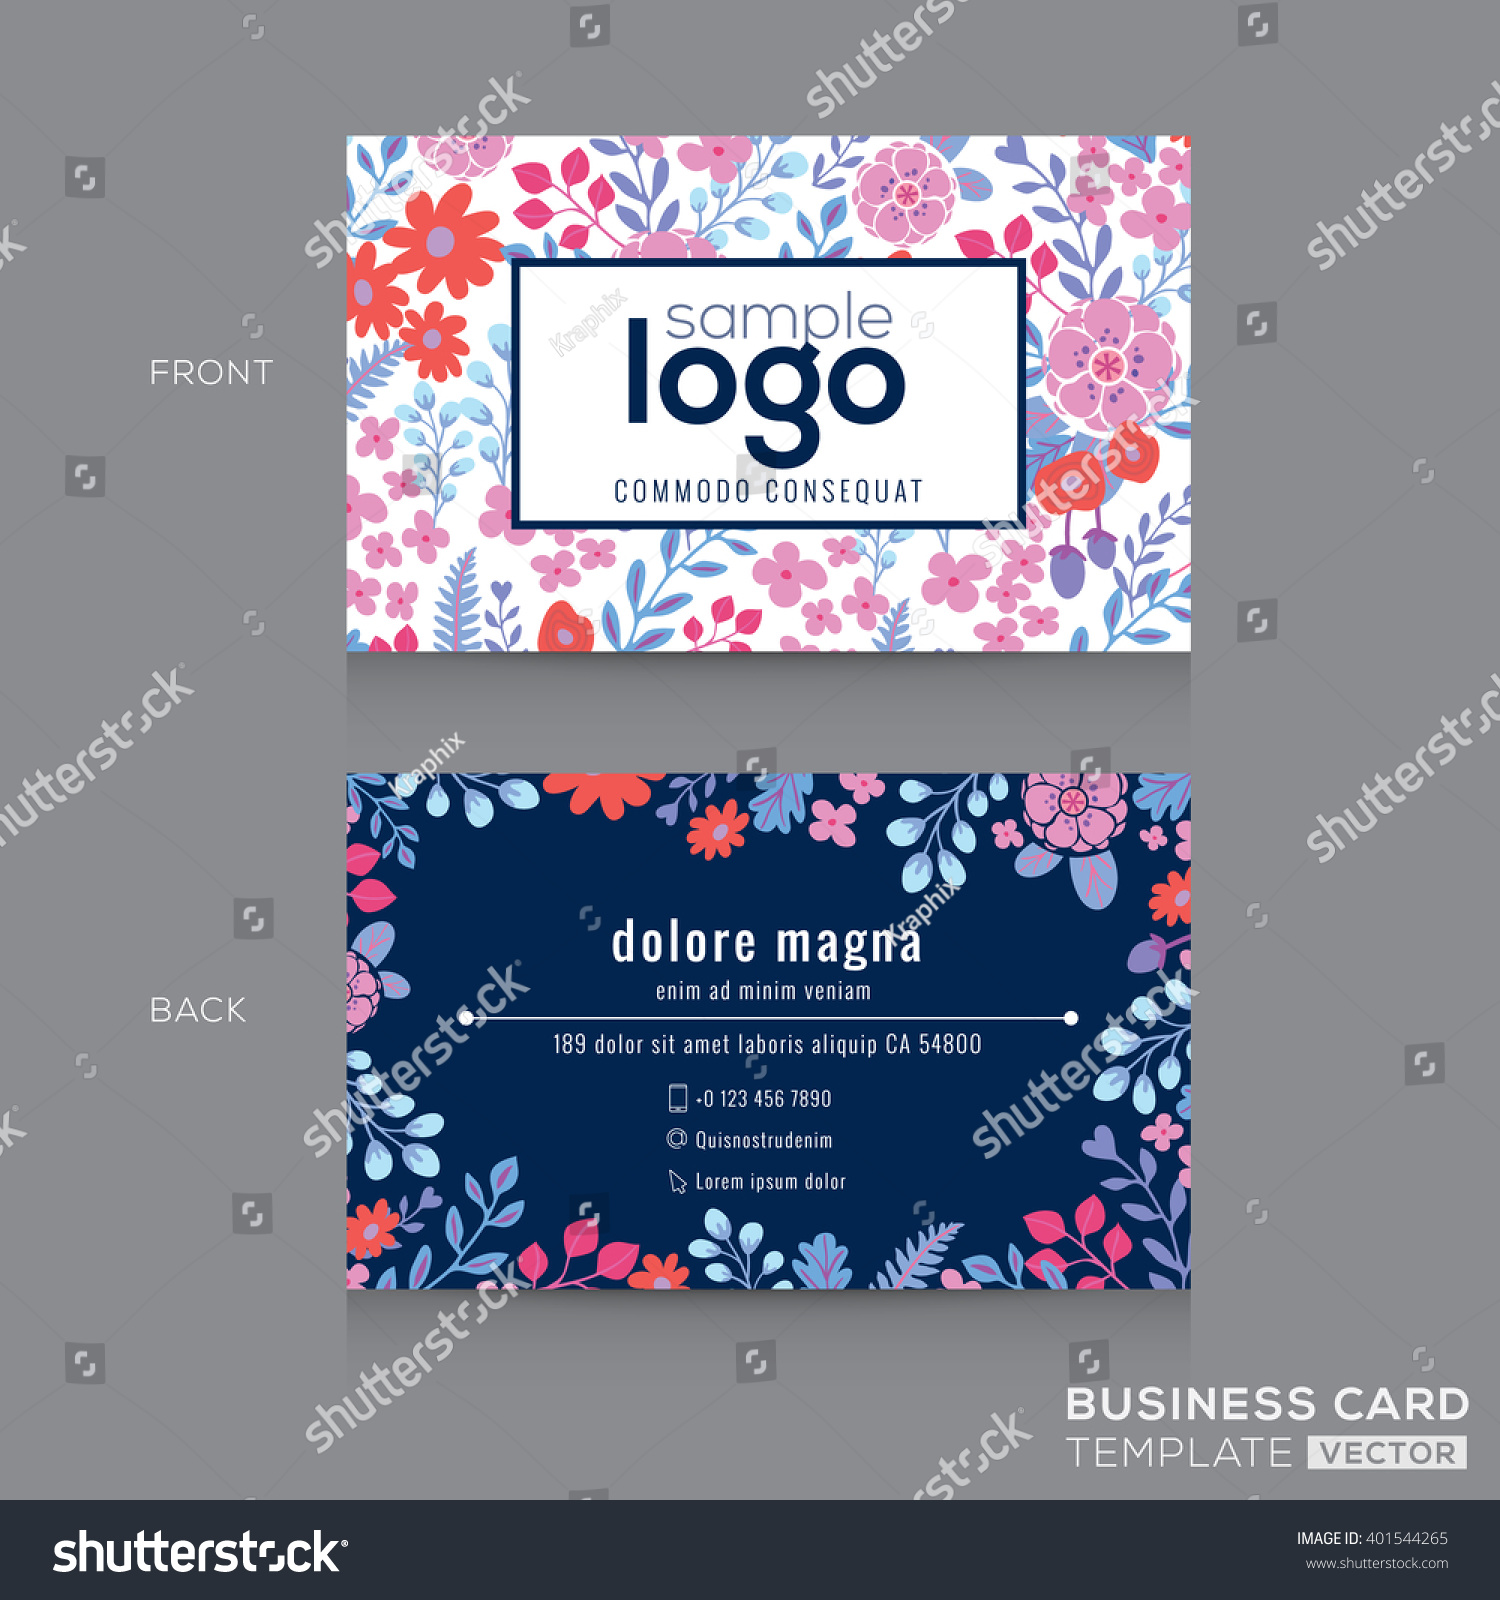 cute floral pattern business card name stock vector 401544265 shutterstock. Black Bedroom Furniture Sets. Home Design Ideas